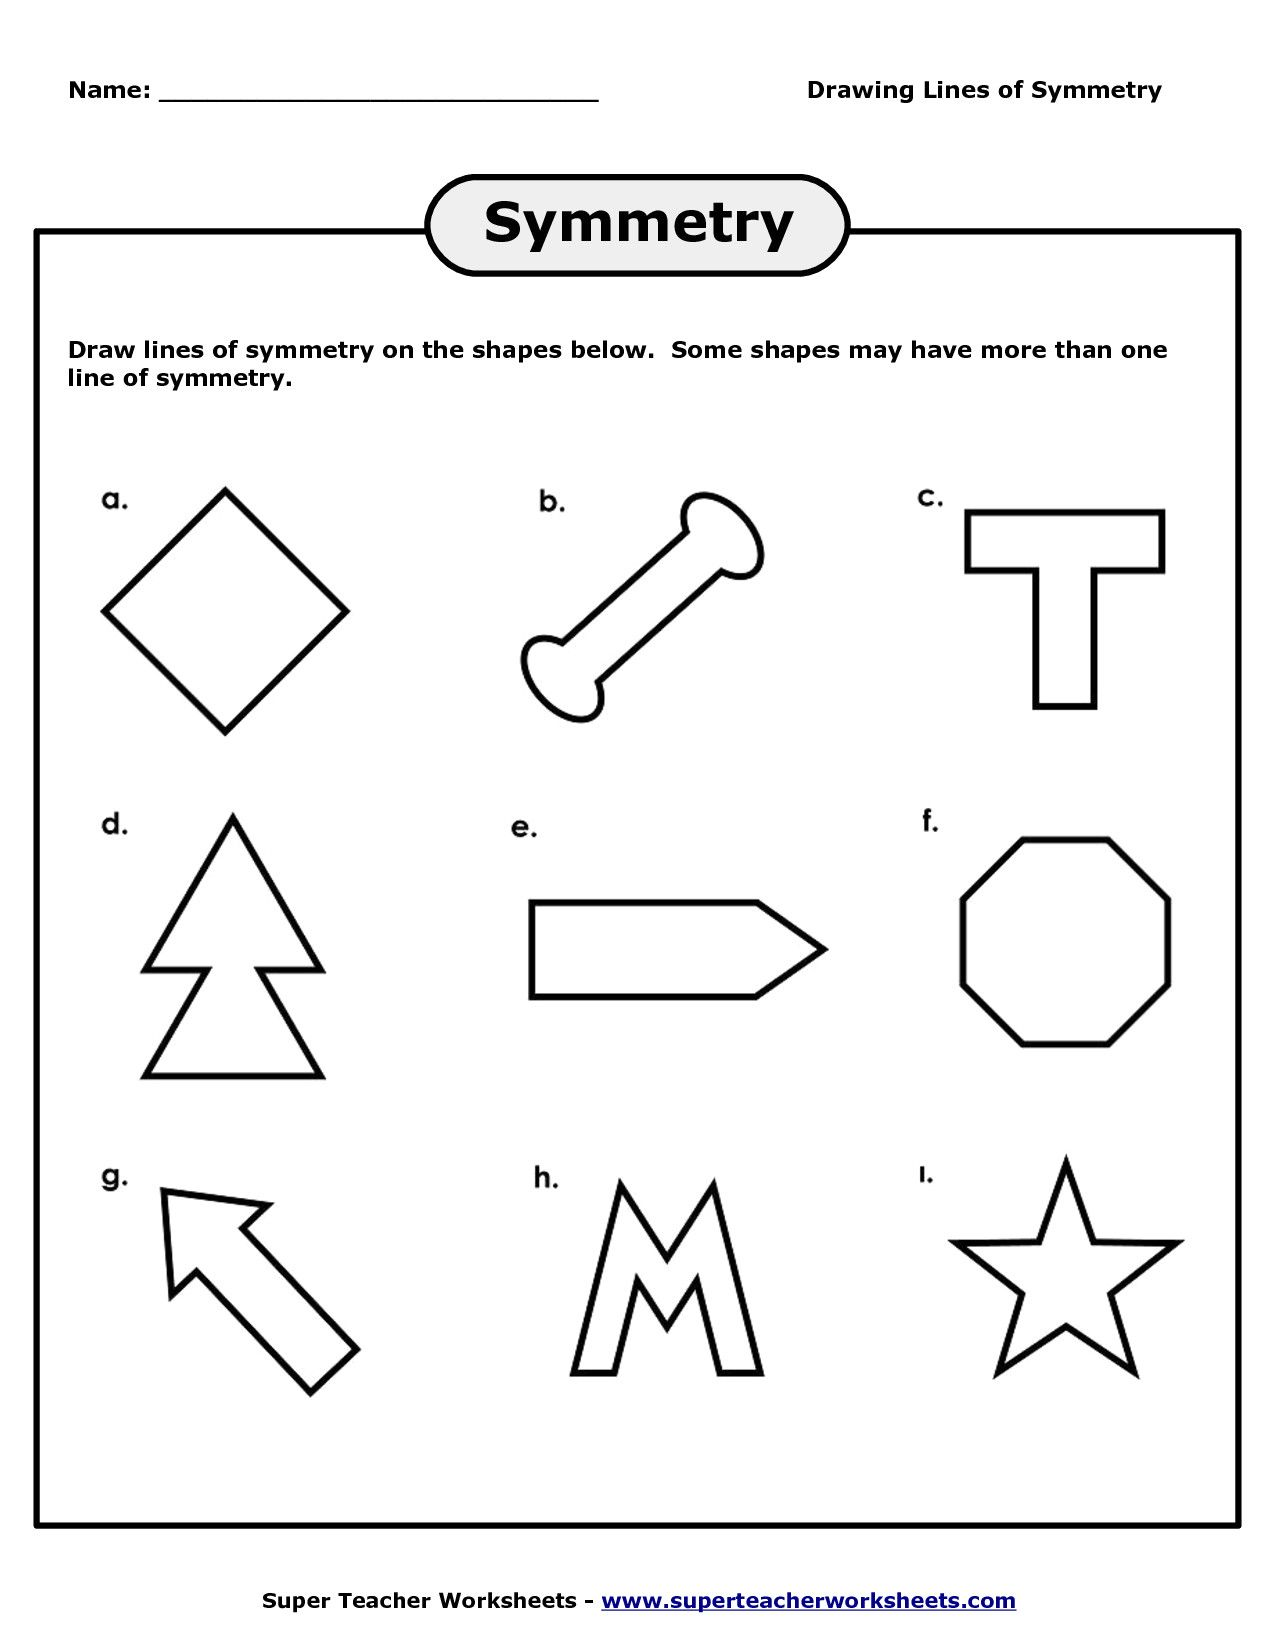 Drawing Lines Of Symmetry Worksheets 4 With Worksheet Within   Symmetry  worksheets [ 1650 x 1275 Pixel ]